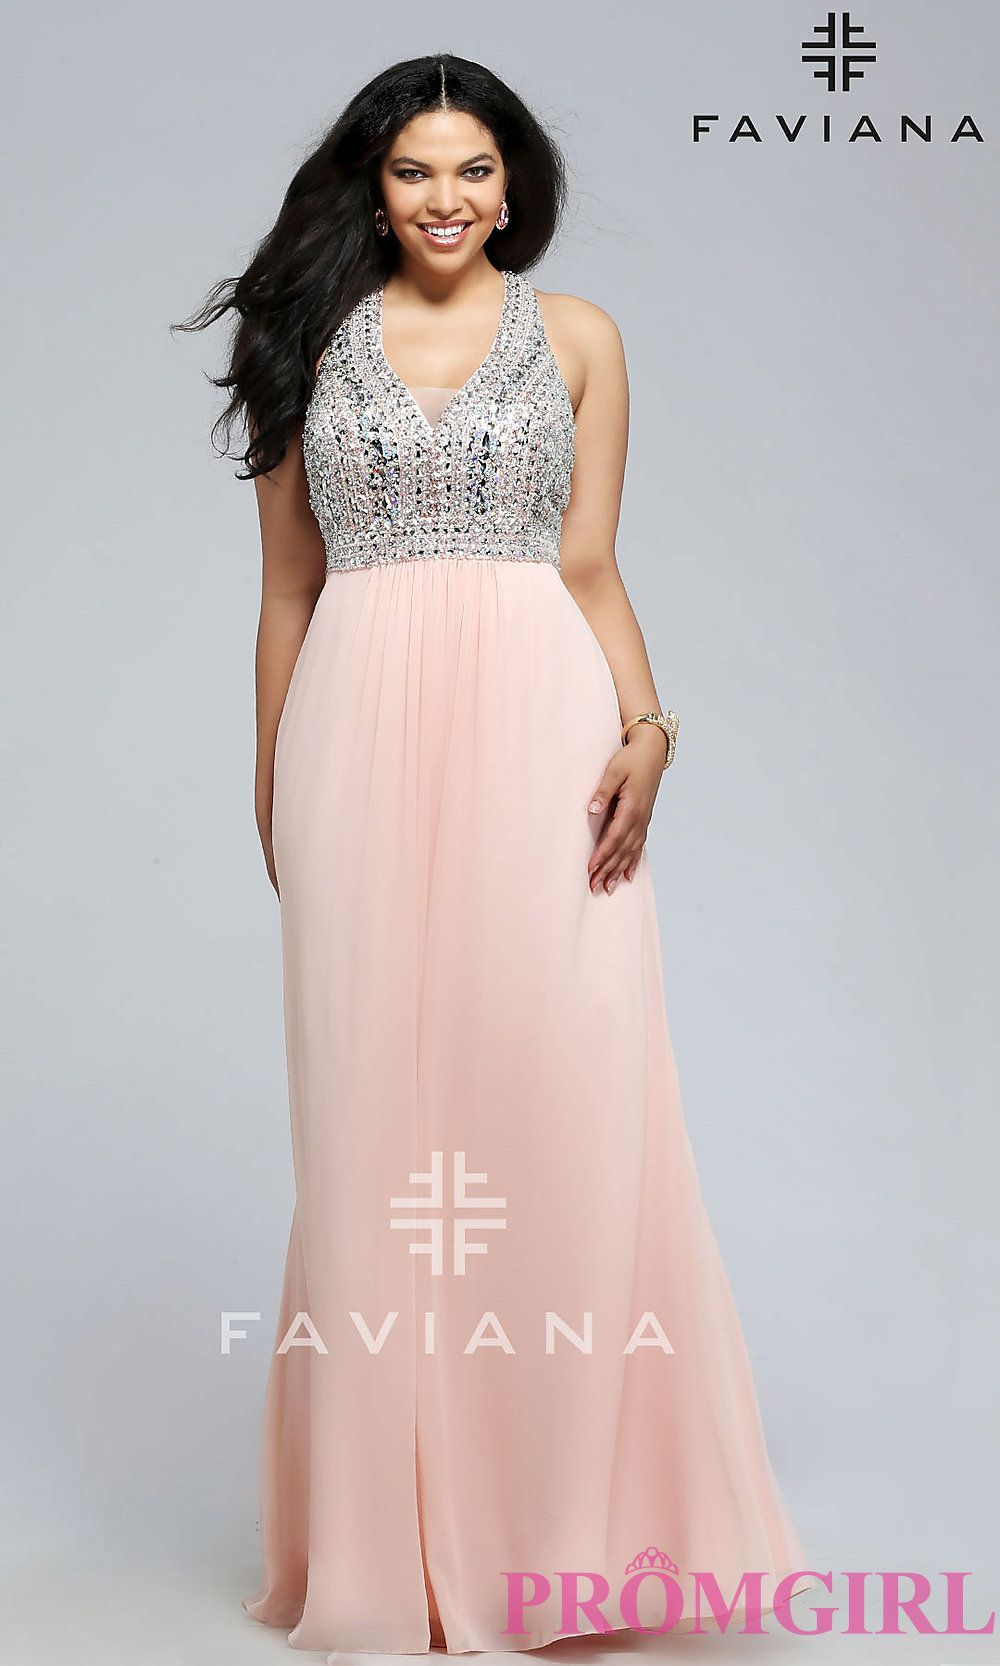 V-neck Plus Size Long Faviana Prom Dress | Prom